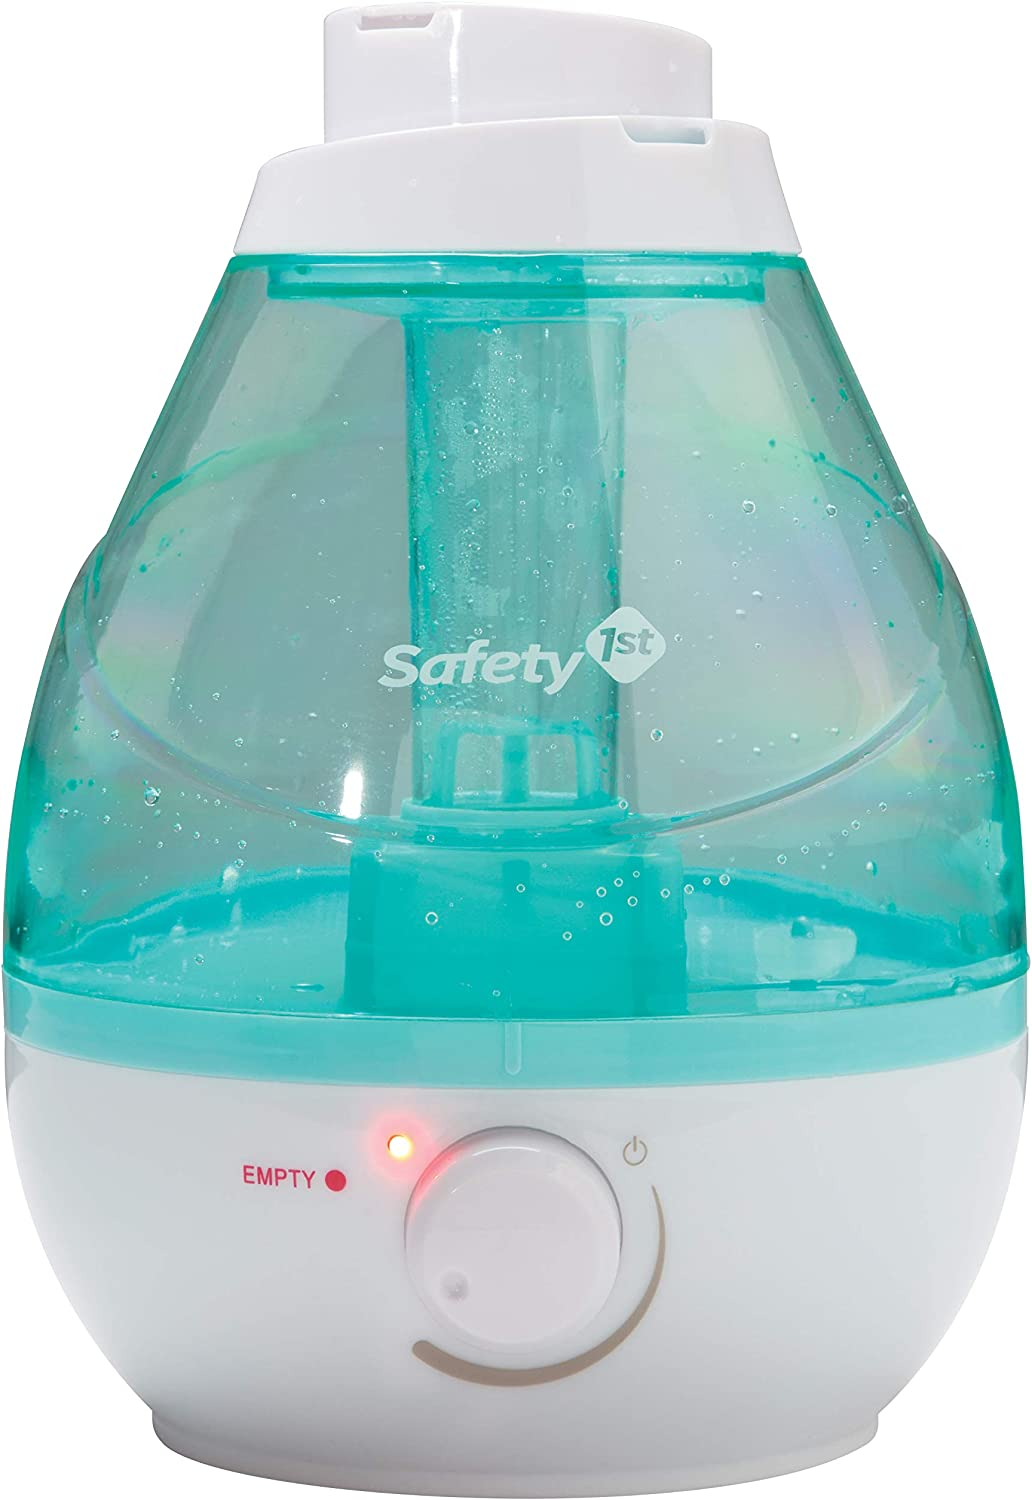 Seafoam One Size Safety 1st 360 Degree Cool Mist Ultrasonic Humidifier